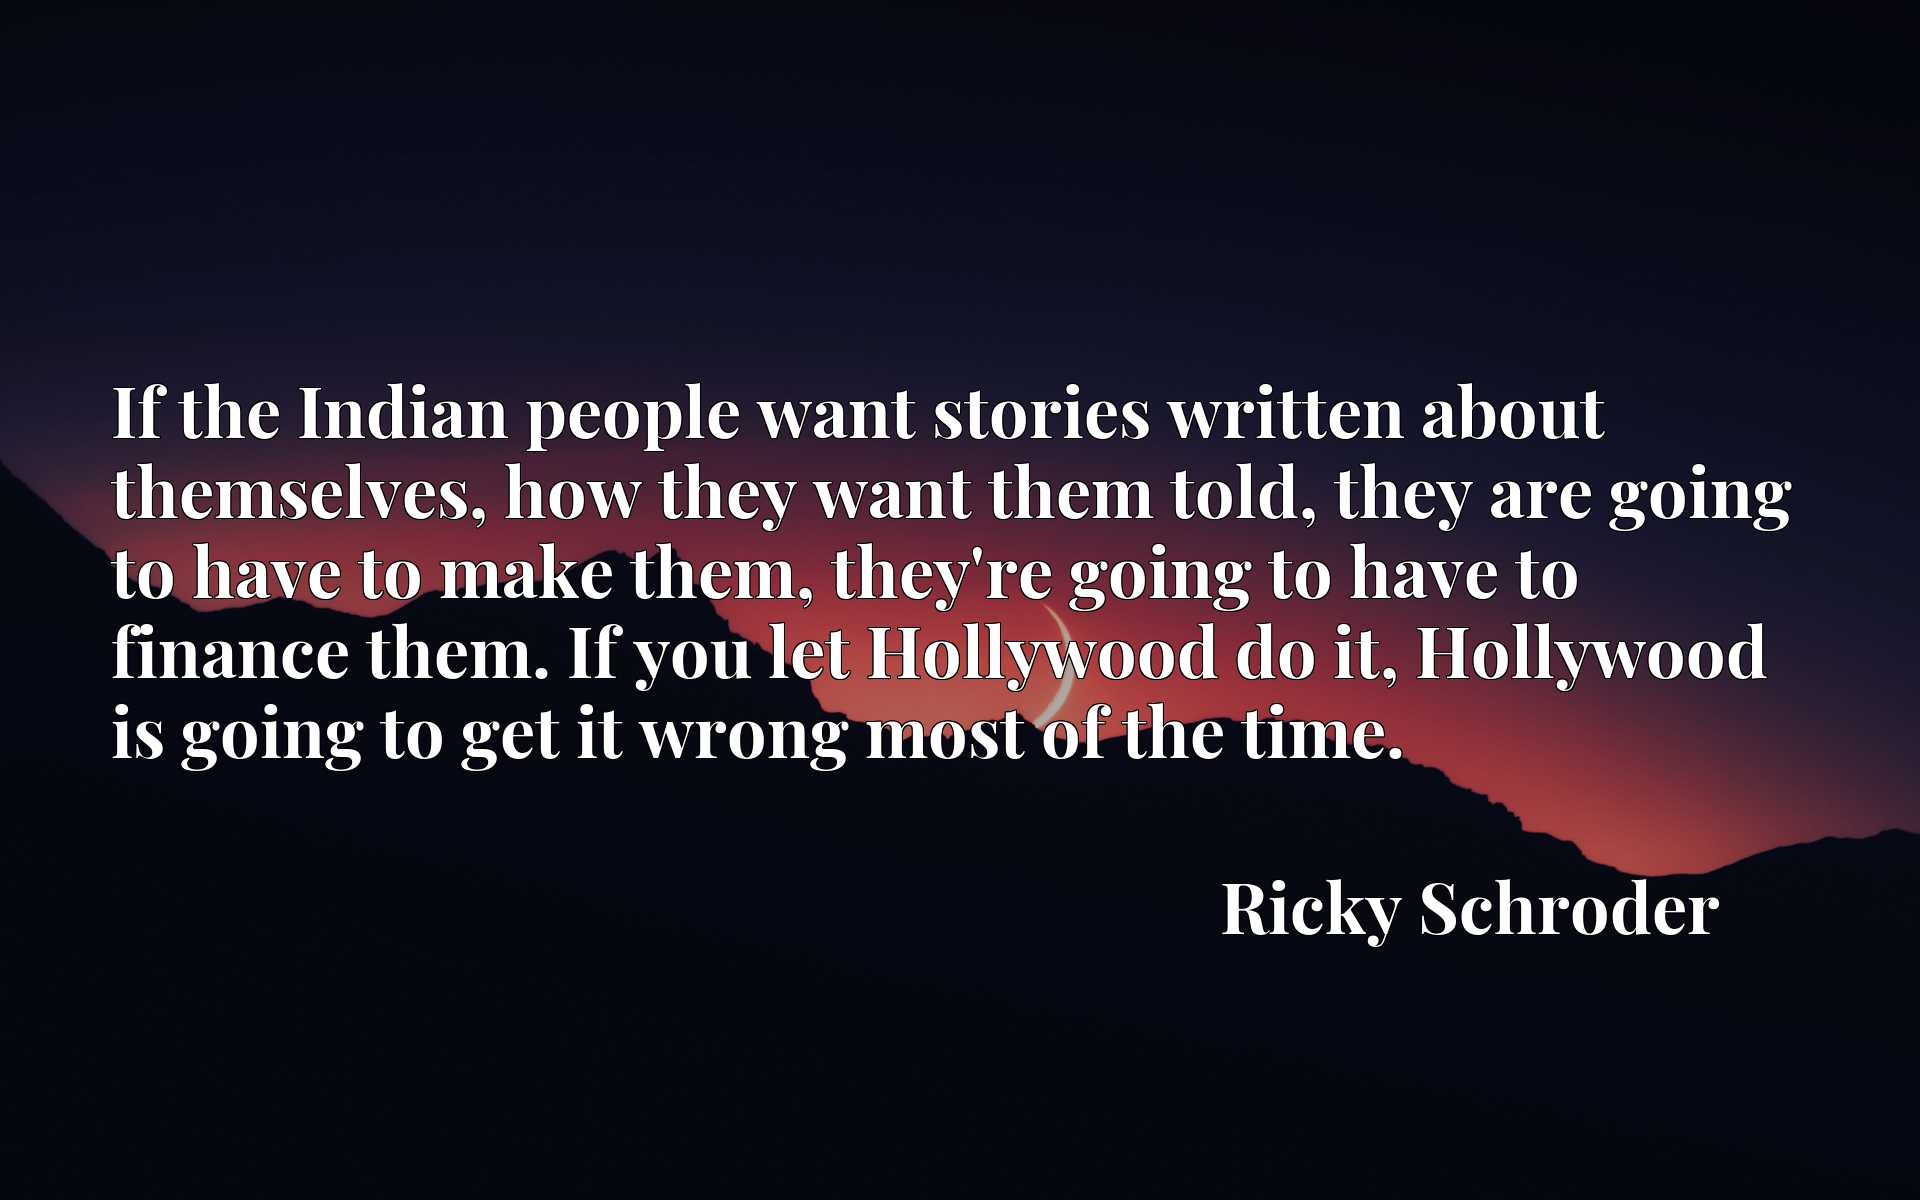 If the Indian people want stories written about themselves, how they want them told, they are going to have to make them, they're going to have to finance them. If you let Hollywood do it, Hollywood is going to get it wrong most of the time.